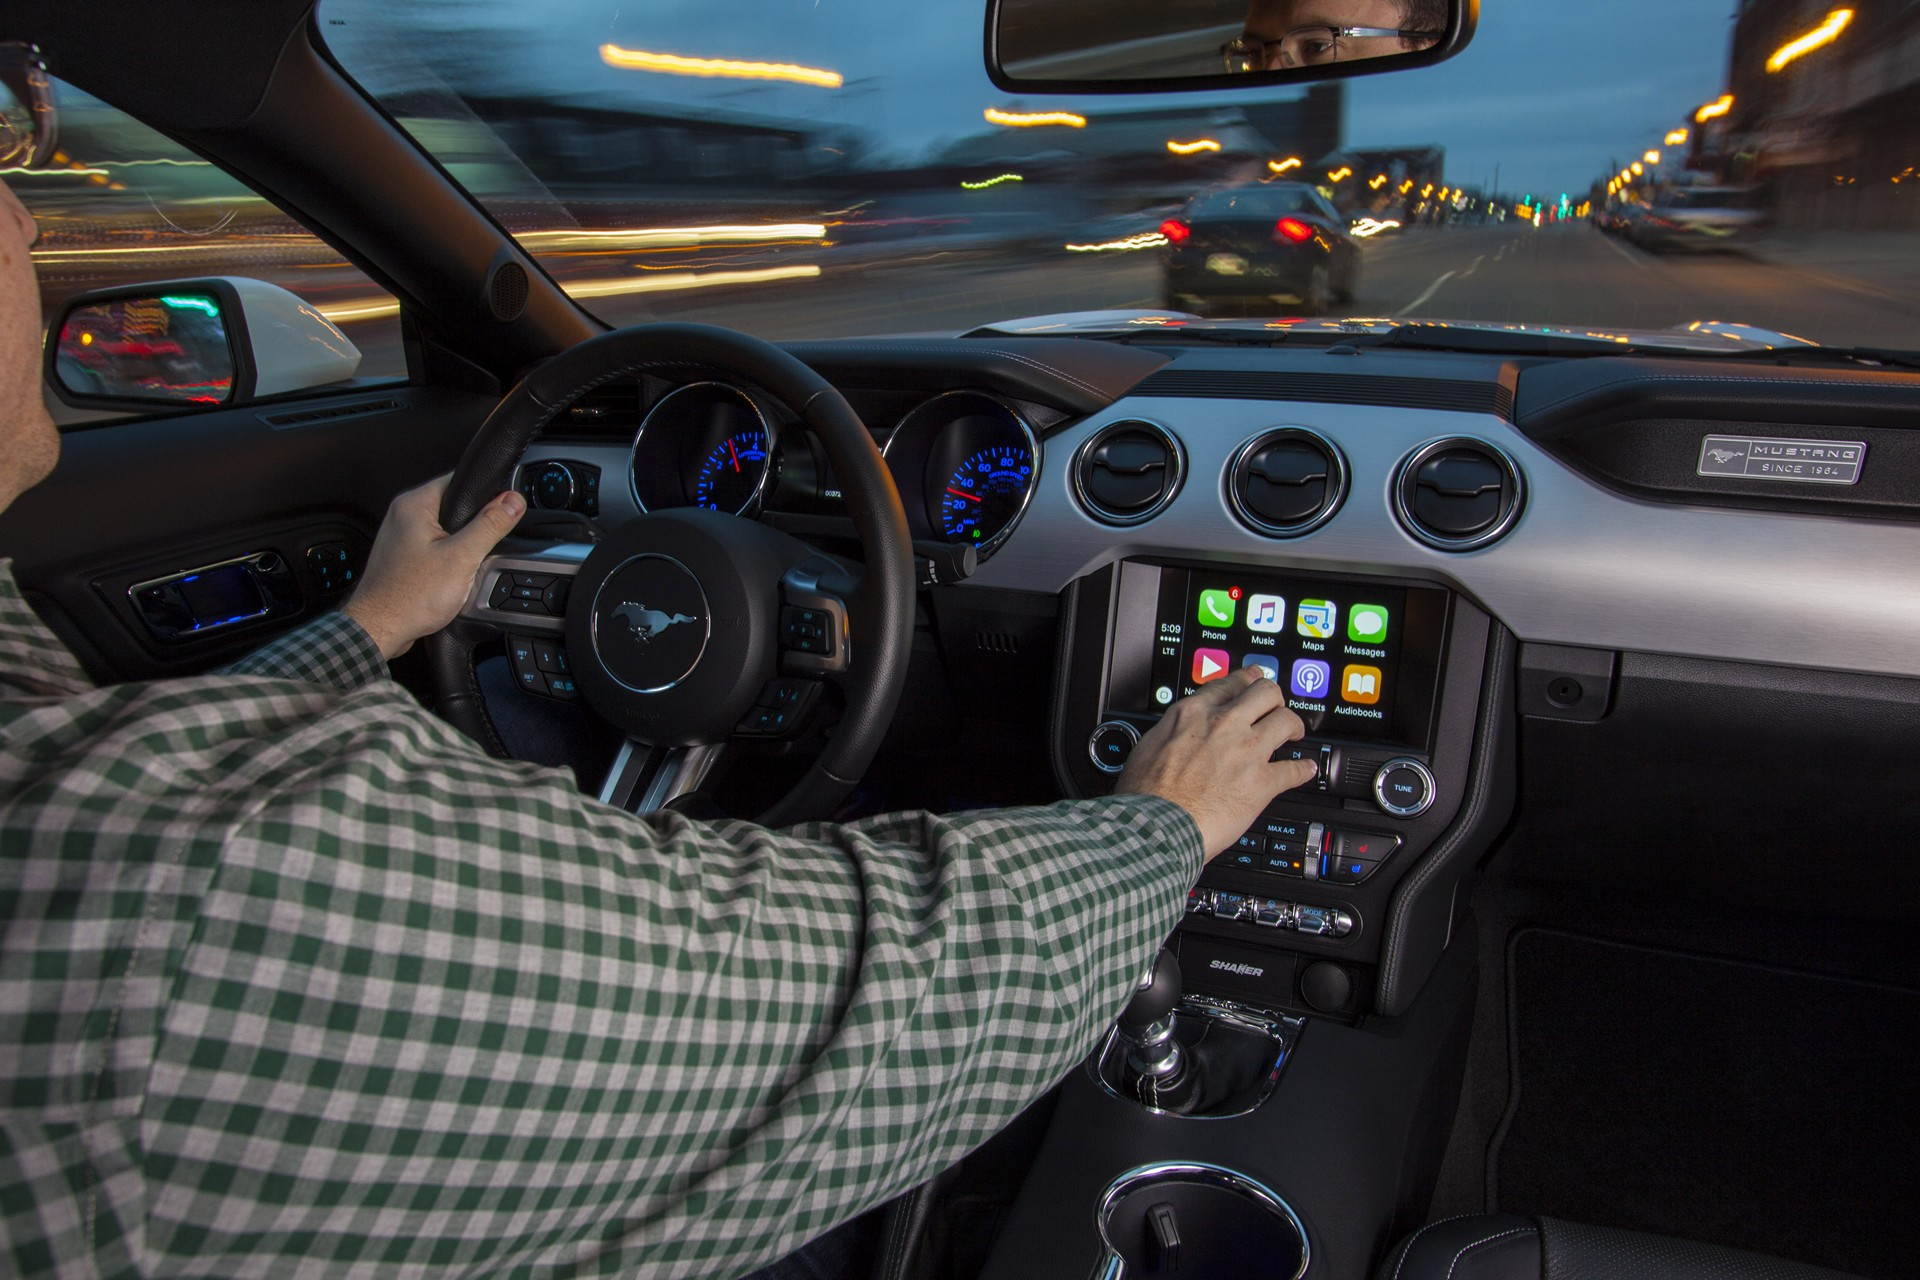 SYNC Brings New AppLink Apps to Millions of Customers, Adds Apple CarPlay, Android Auto, 4G LTE ...